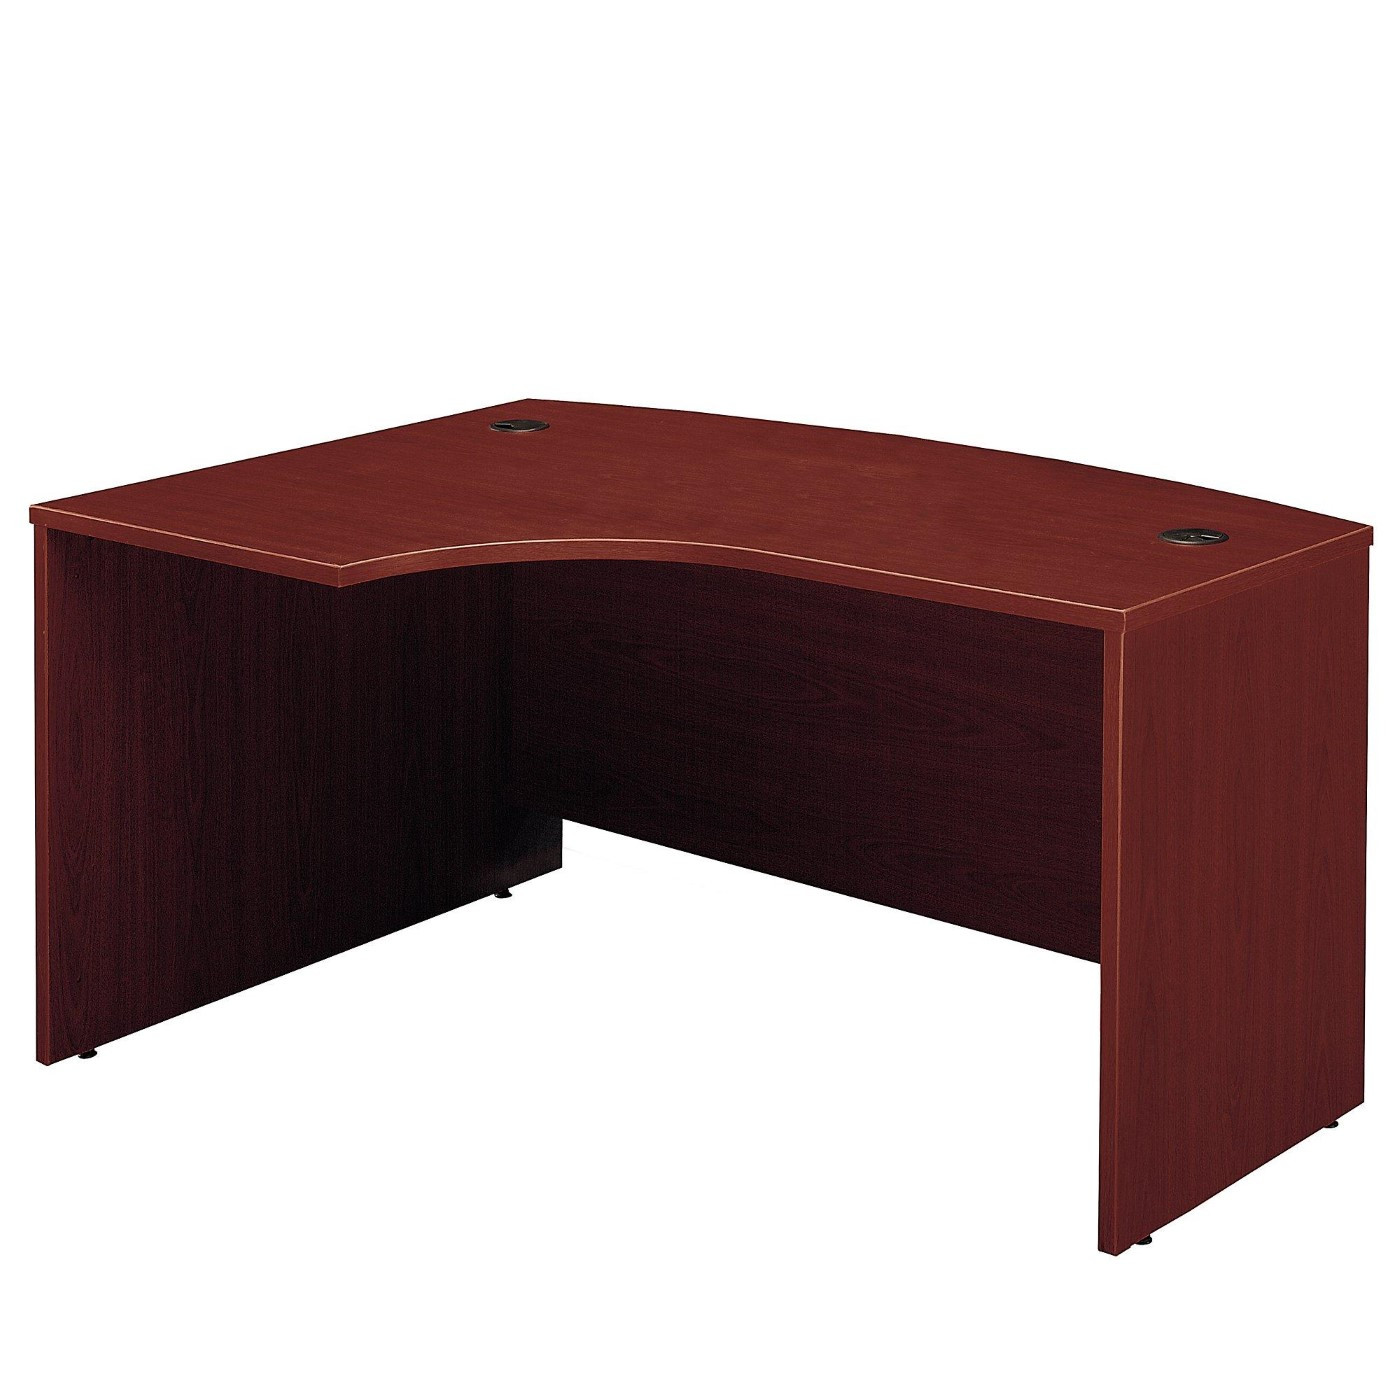 <font color=#c60><b>BUSH BUSINESS FURNITURE SERIES C 60W X 43D RIGHT HANDED L BOW DESK. FREE SHIPPING</font></b>